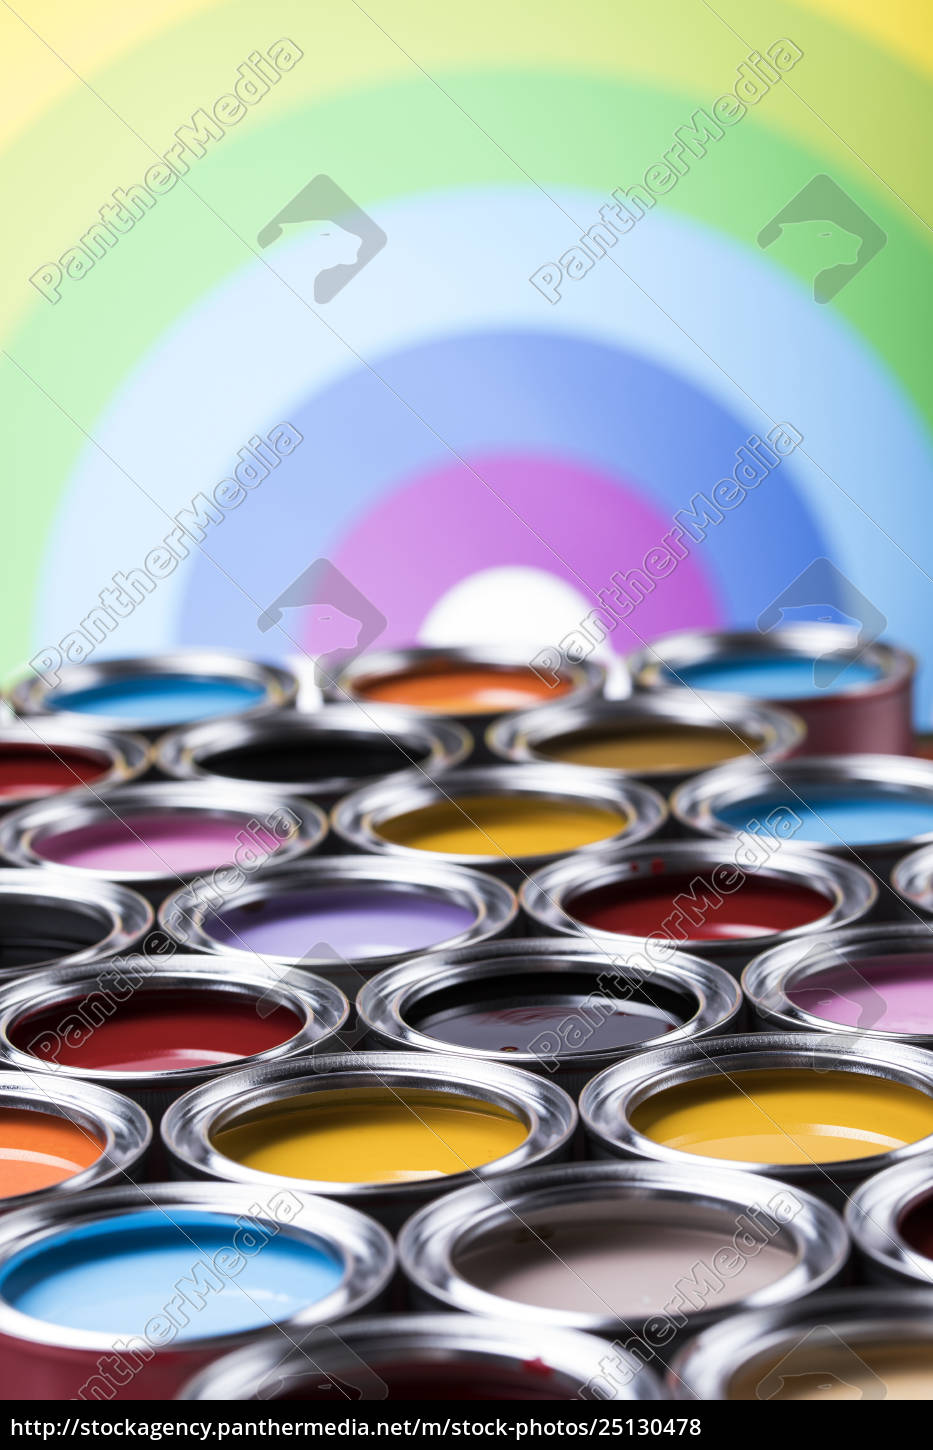 rainbow, colors, , open, cans, of, paint - 25130478